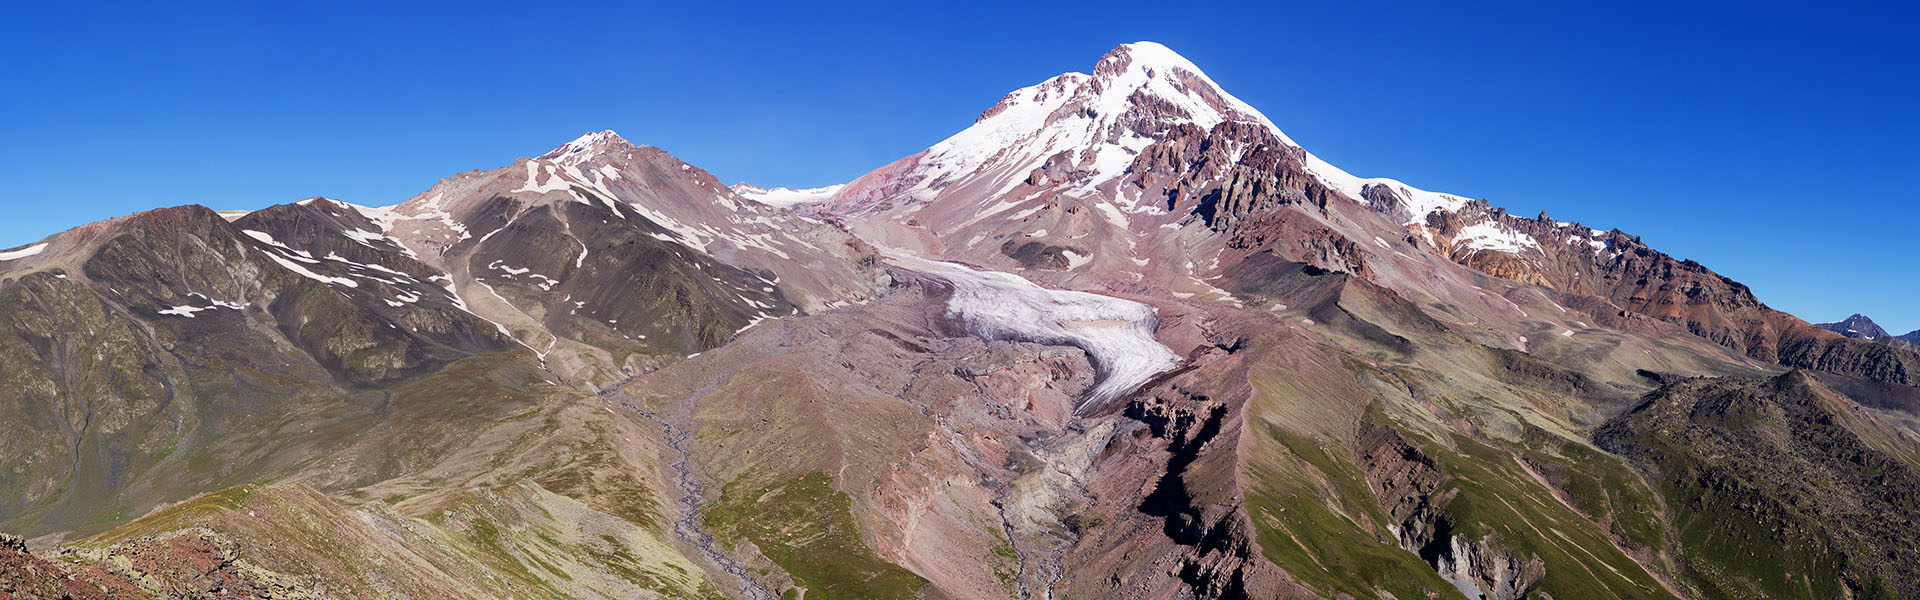 Tour to Mount Kazbek